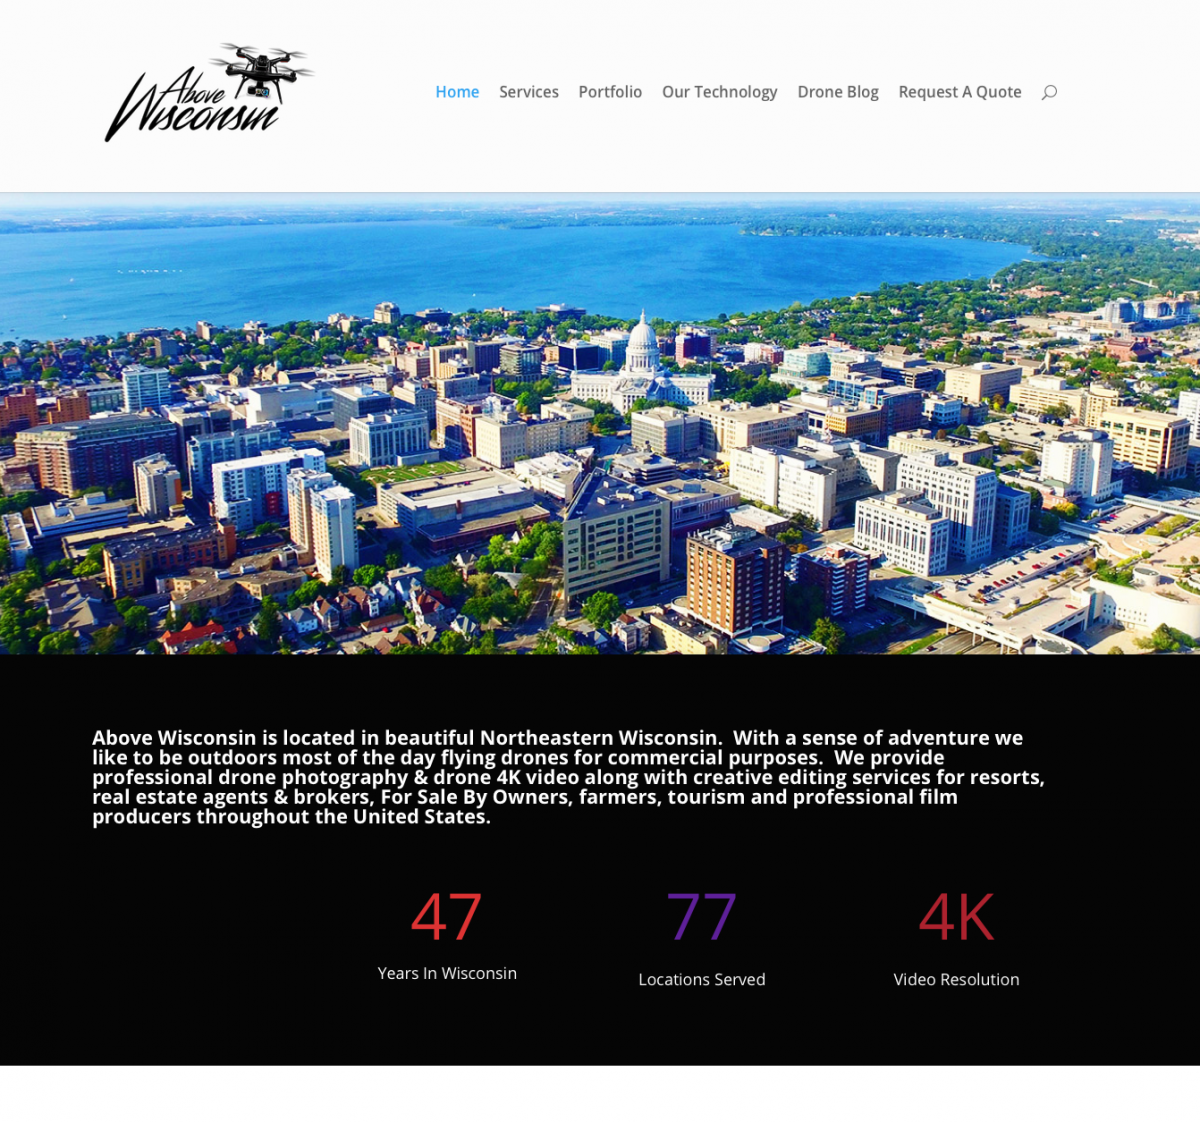 2467a7edf9e Above Wisconsin ~ Commercial Drone Photographers - Fox Valley Web ...